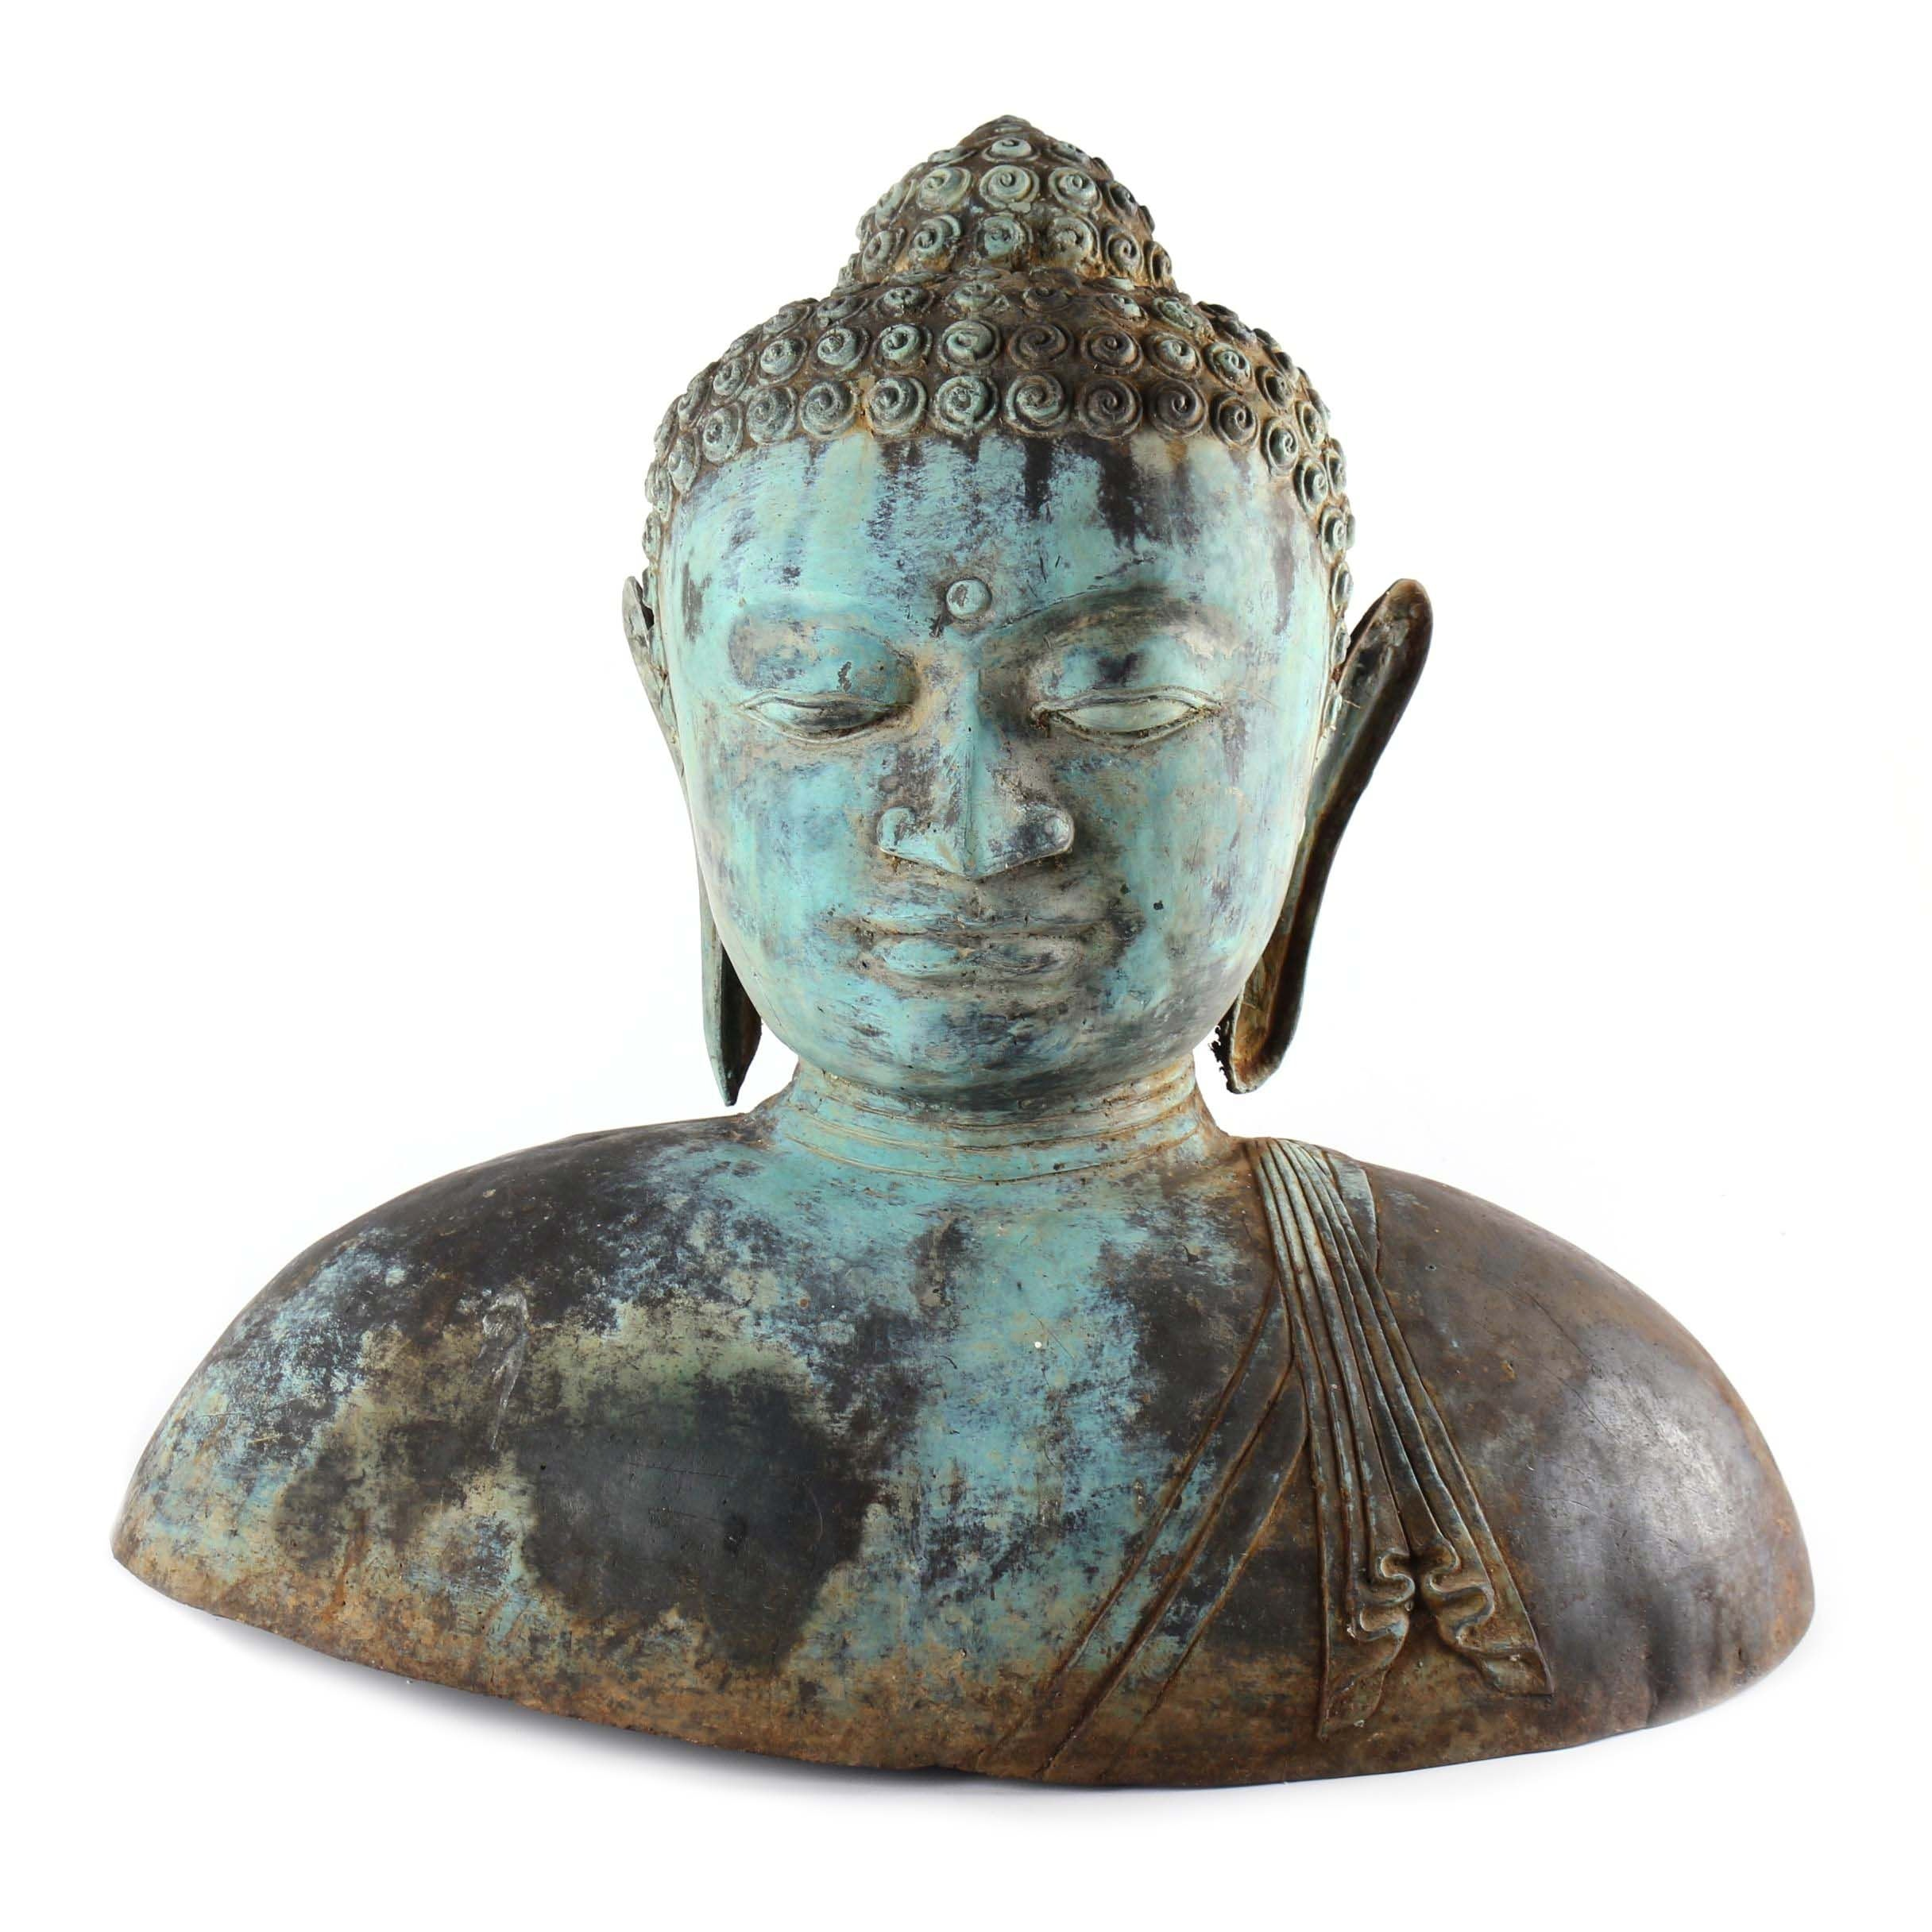 Concrete Buddha Bust with Patinaed Metal Overlay